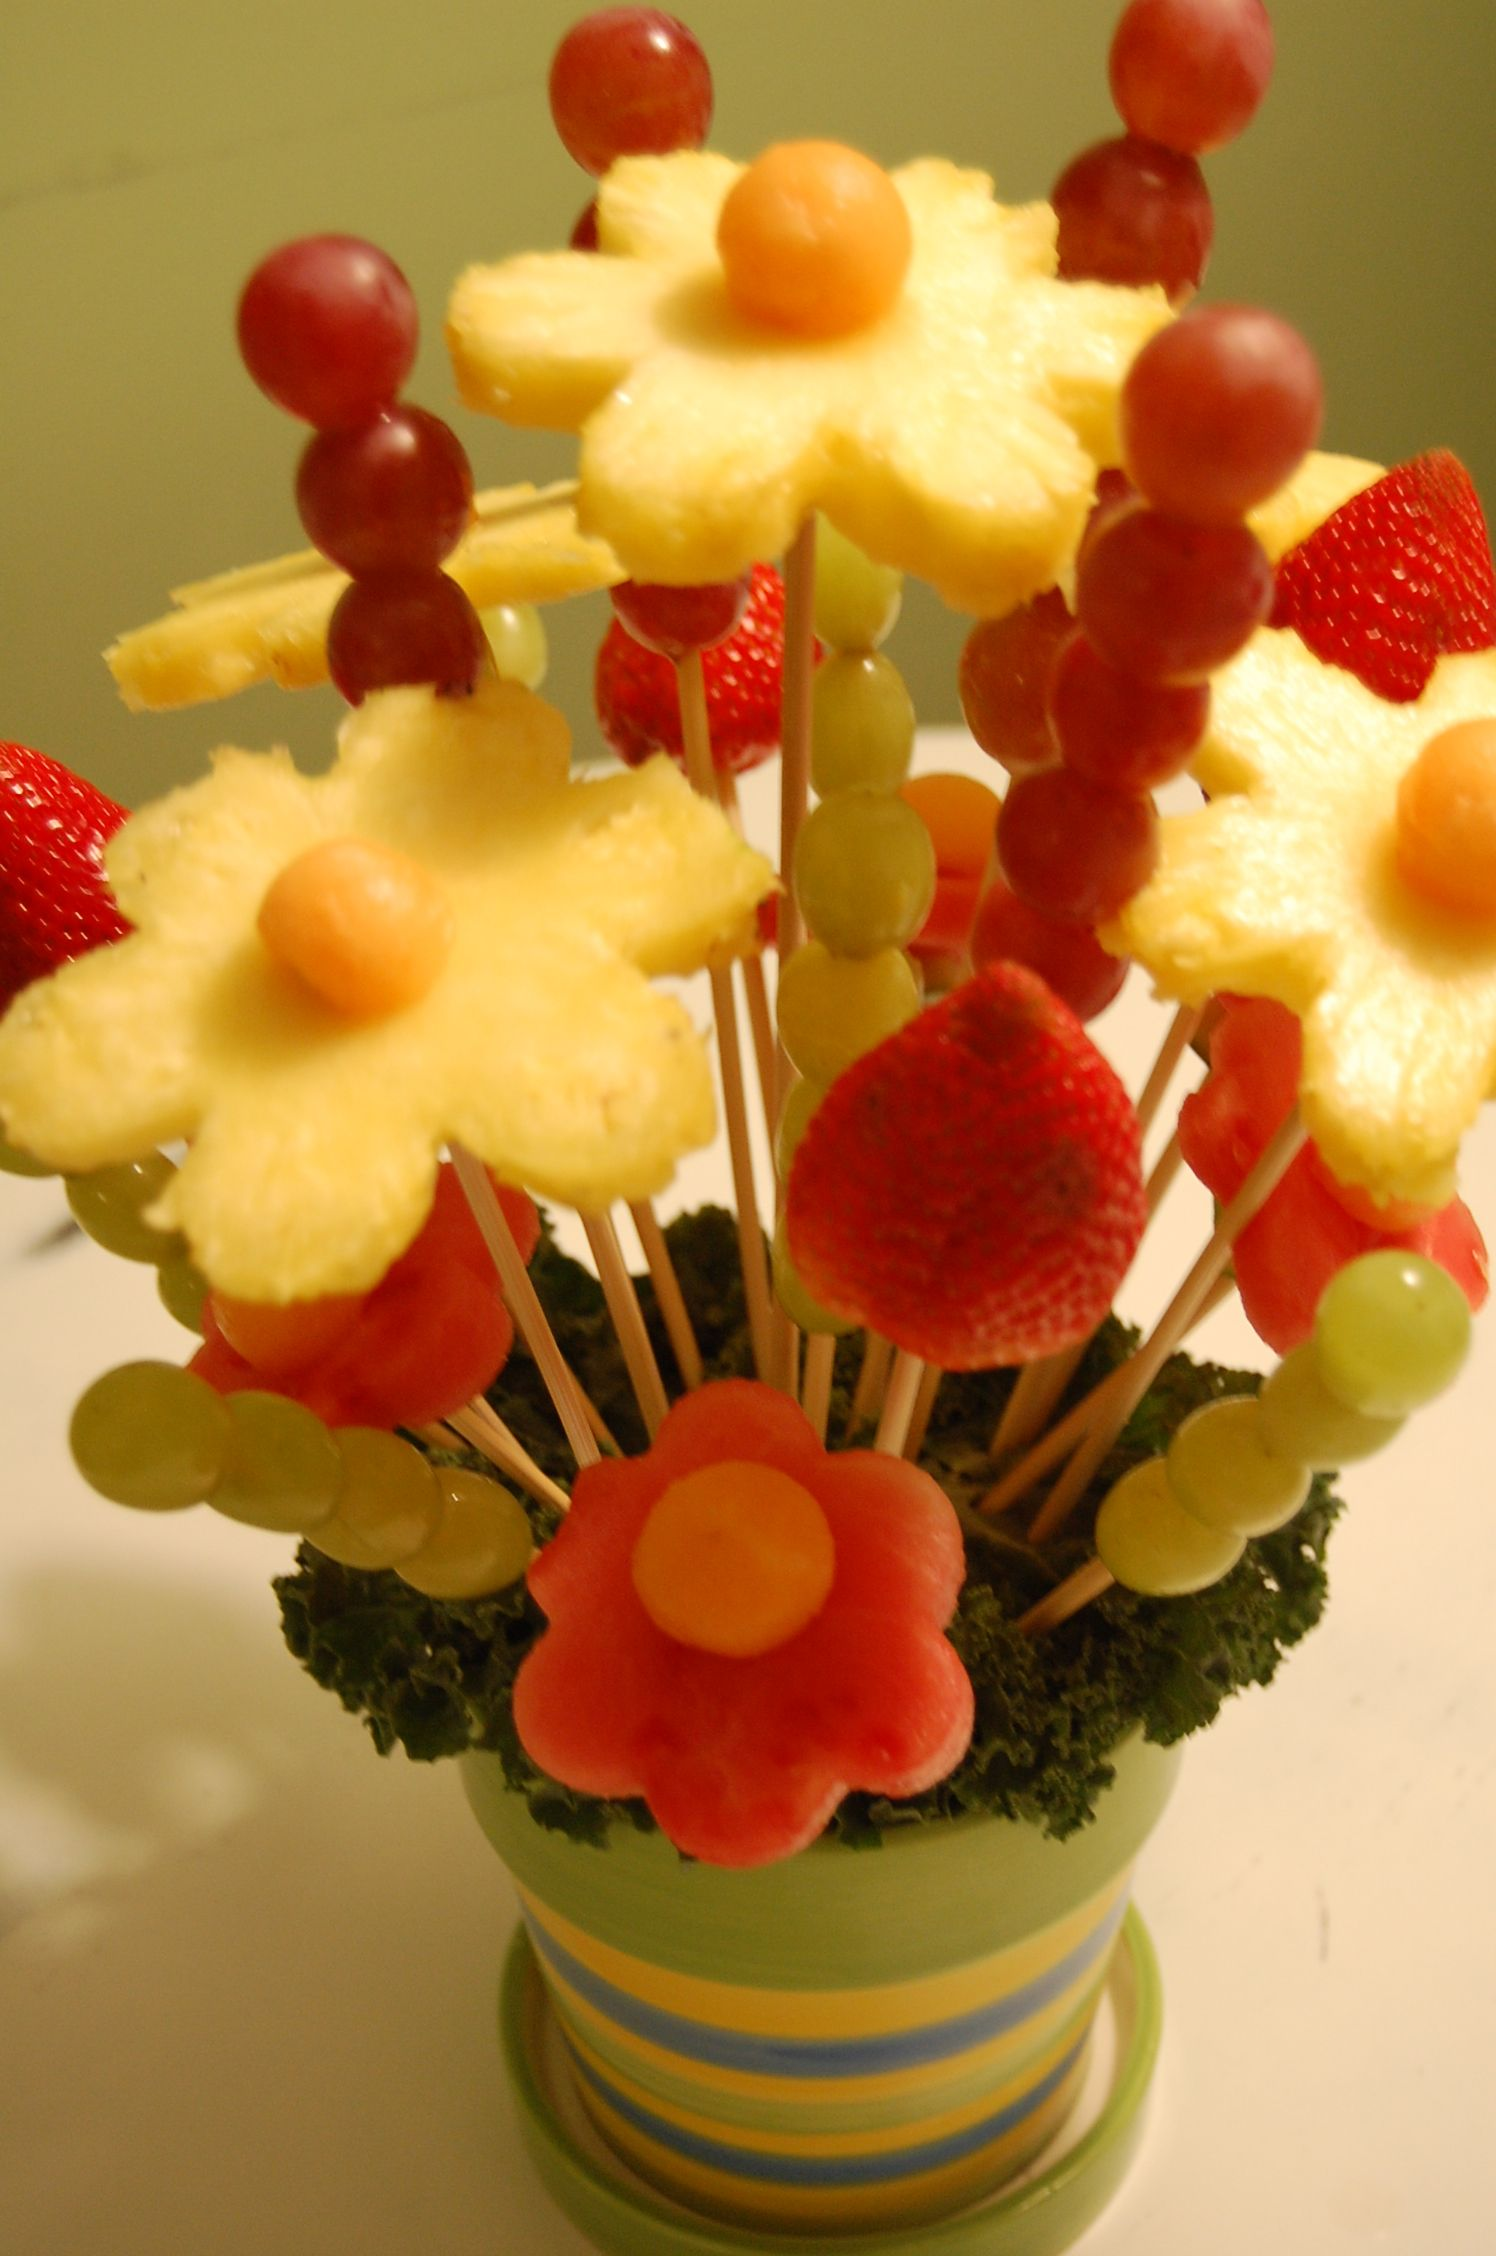 Edible Fruit Arrangement Recipe Easy Ways To Make Food More